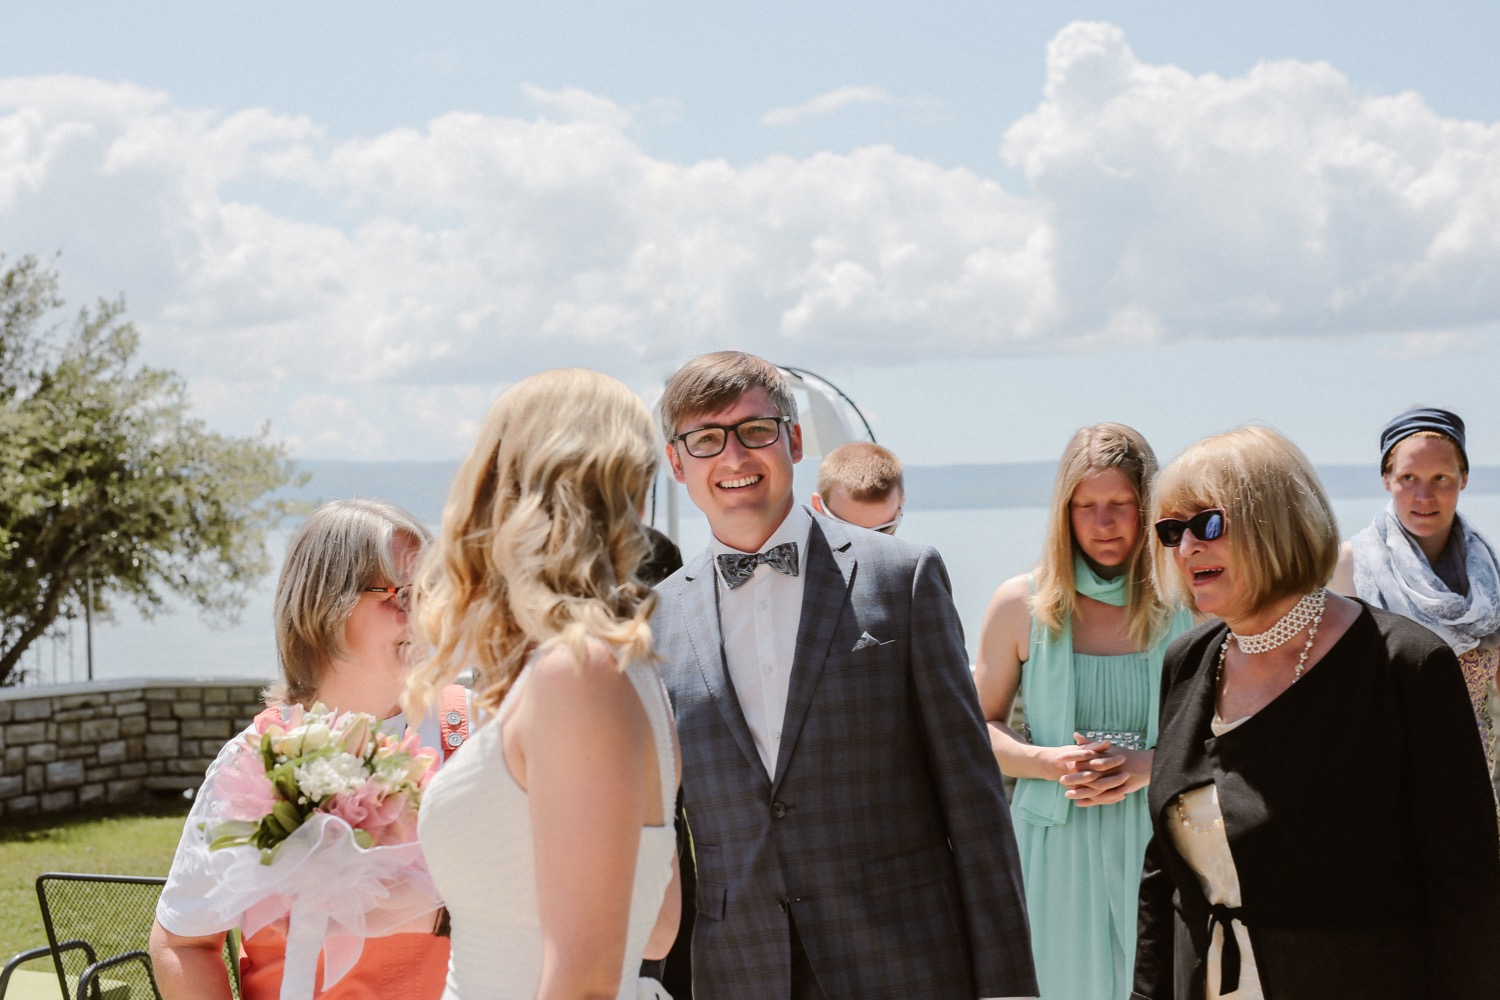 Croatia beach elopement hilke thomas love and ventures photography 34 | Croatia Elopement Photographer and Videographer